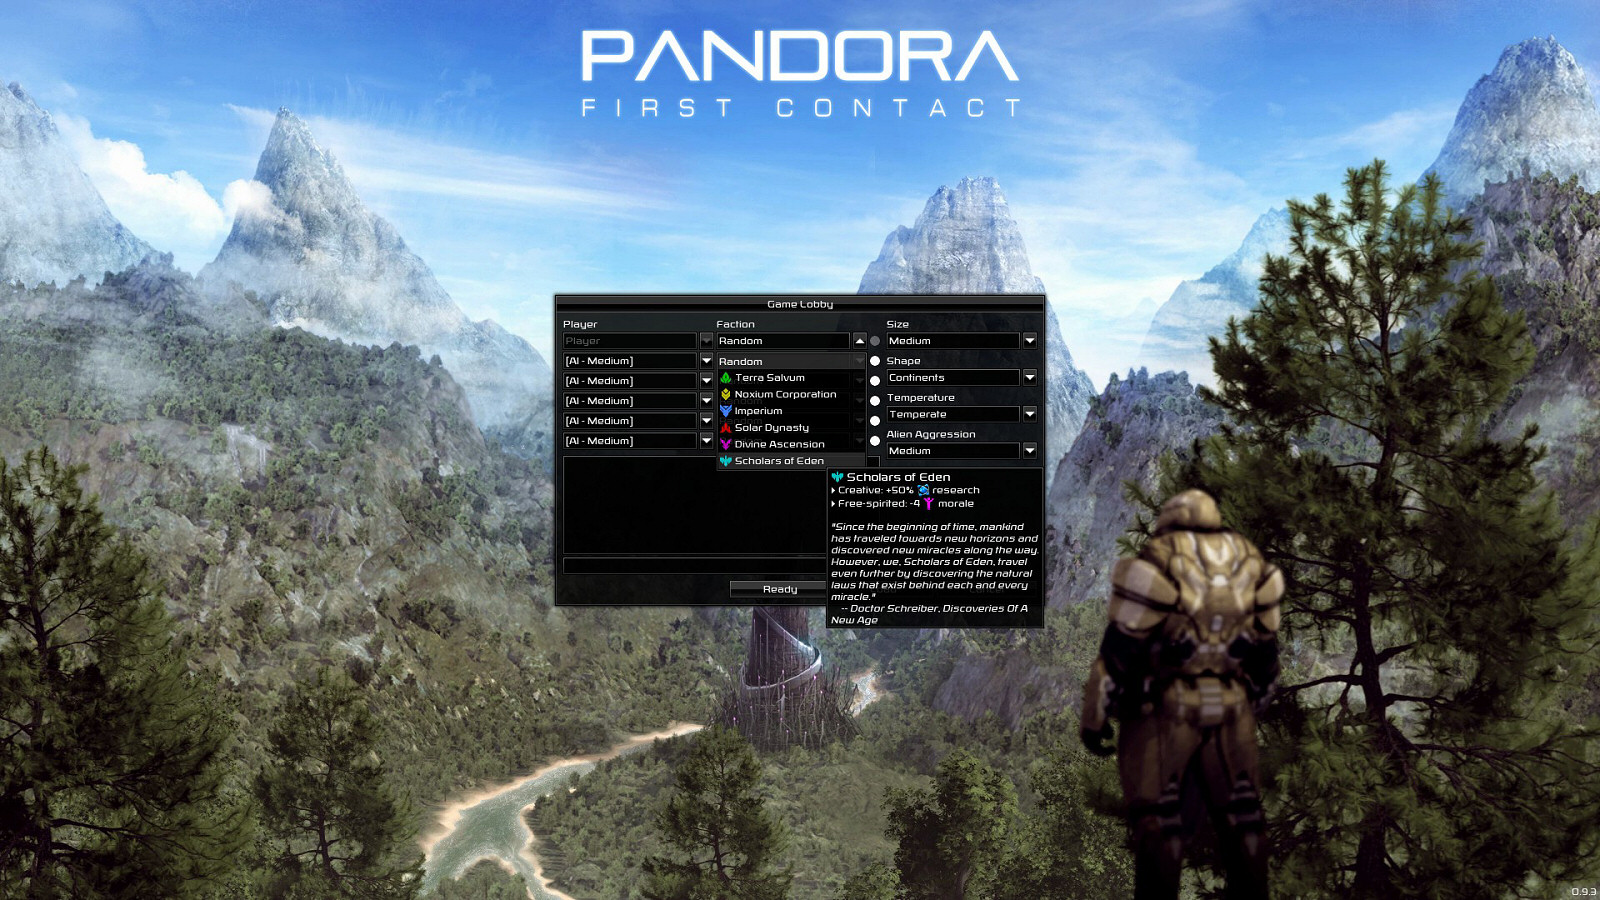 pandora_first_contact_factions_large.jpg